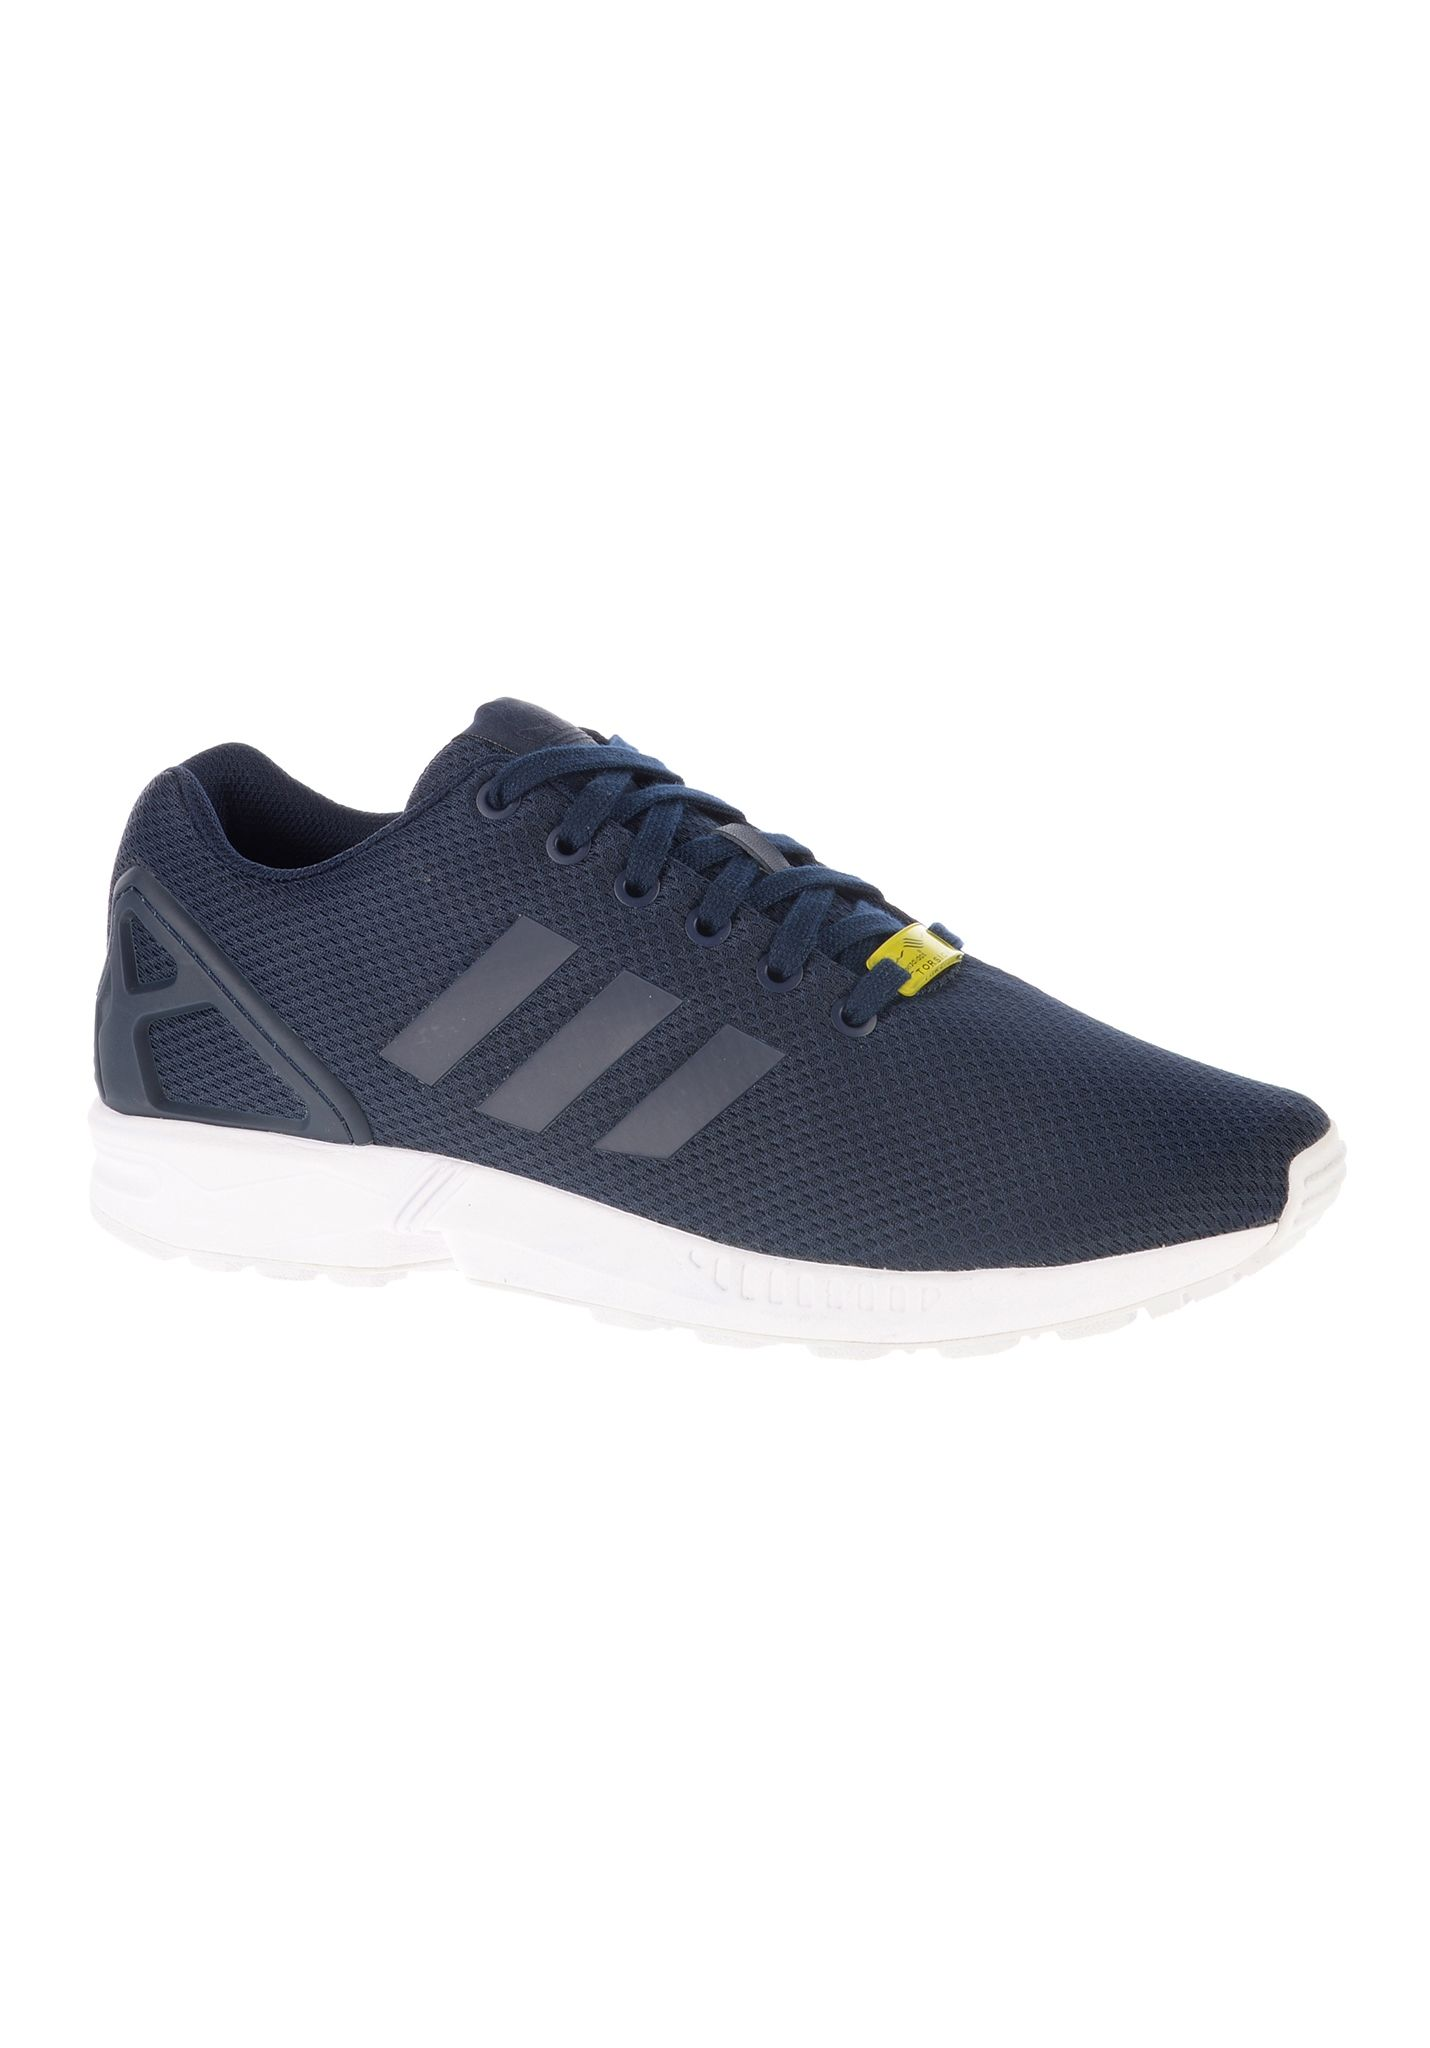 4f7e919c4f0 ADIDAS ORIGINALS ZX Flux - Sneakers for Men - Blue - Planet Sports